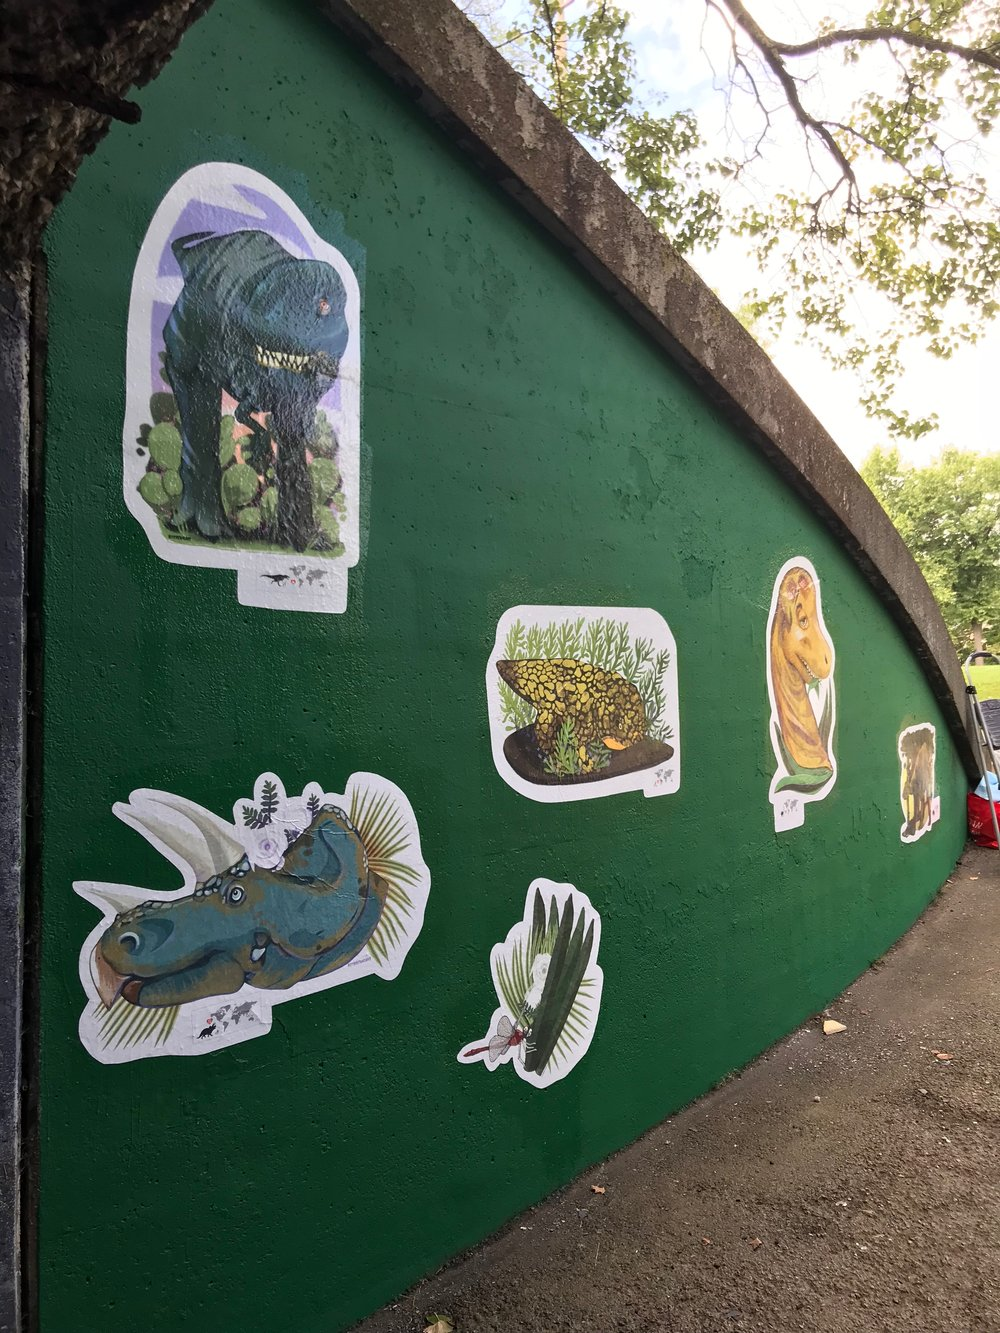 The Big Dino Sticker Project - Public Art in Schenley Park (Pgh, PA)